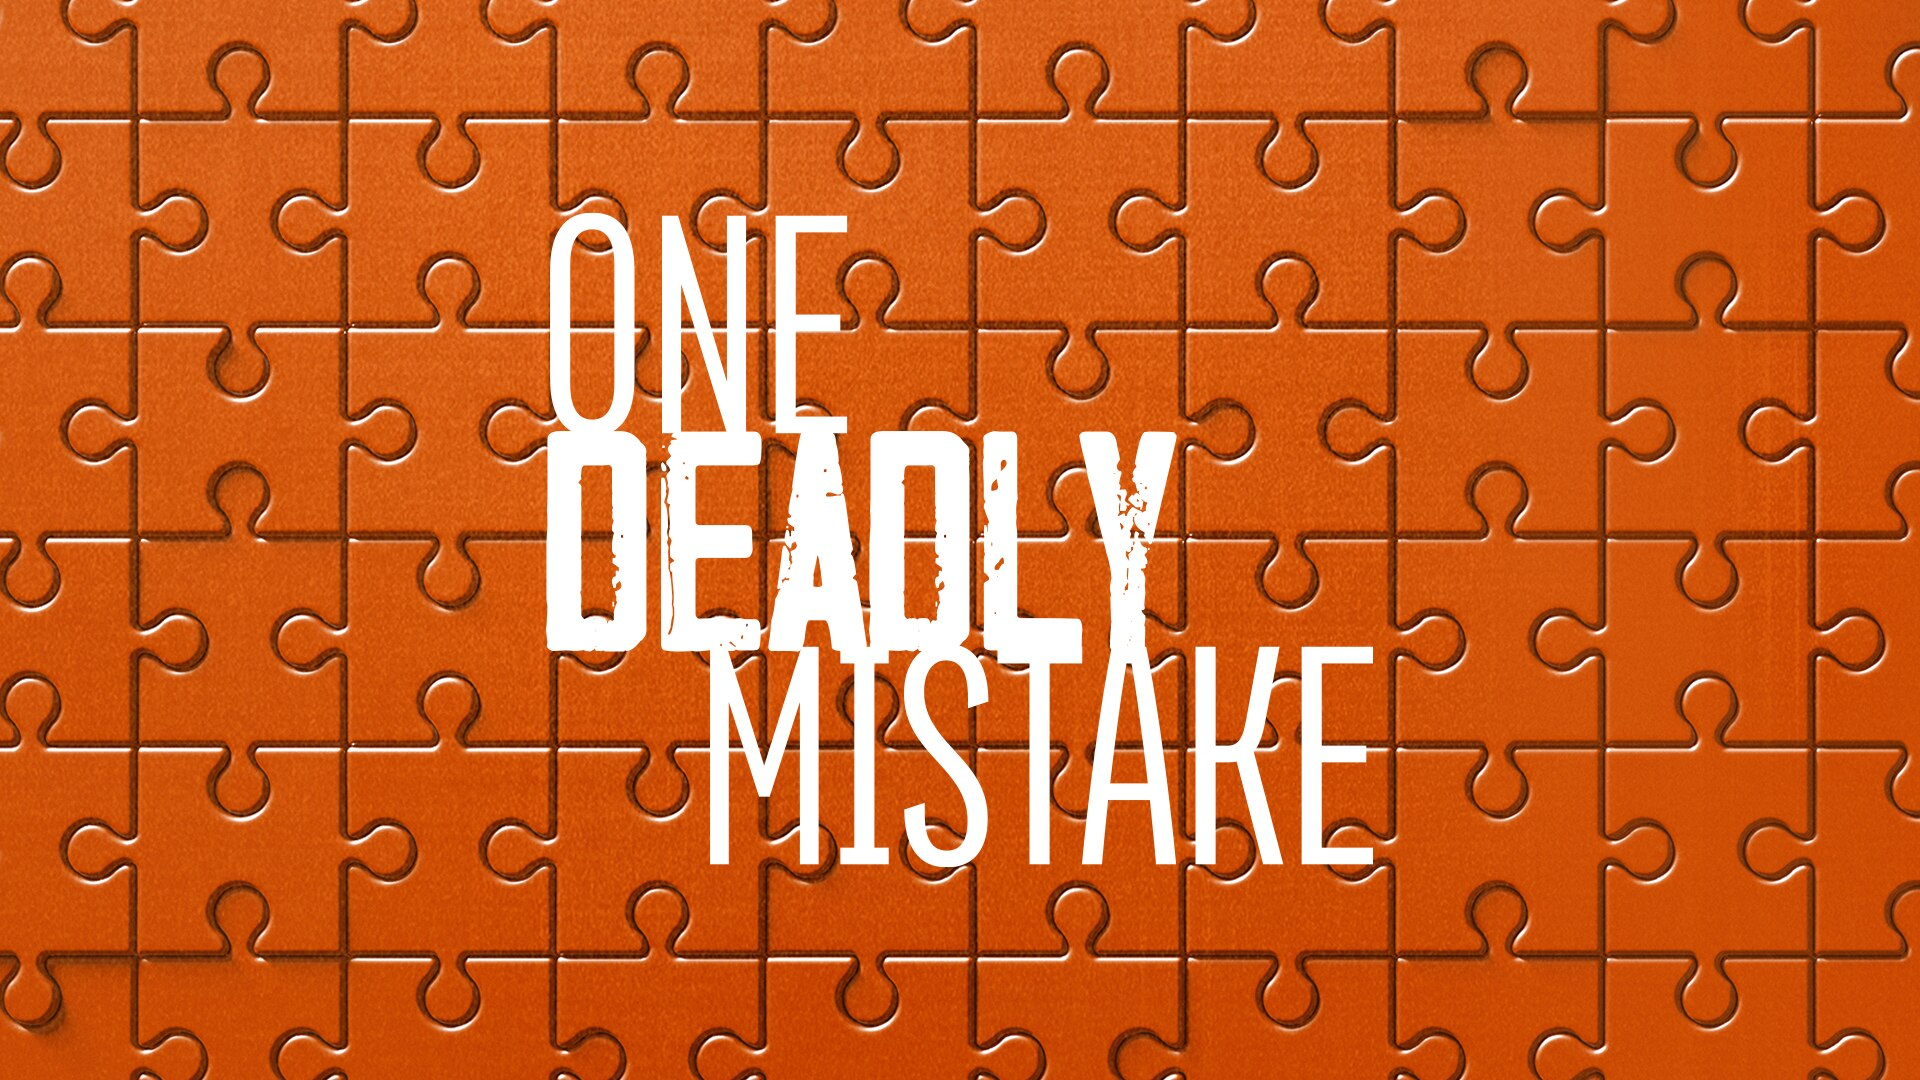 One Deadly Mistake Season 1 Episode 5 to be released soon